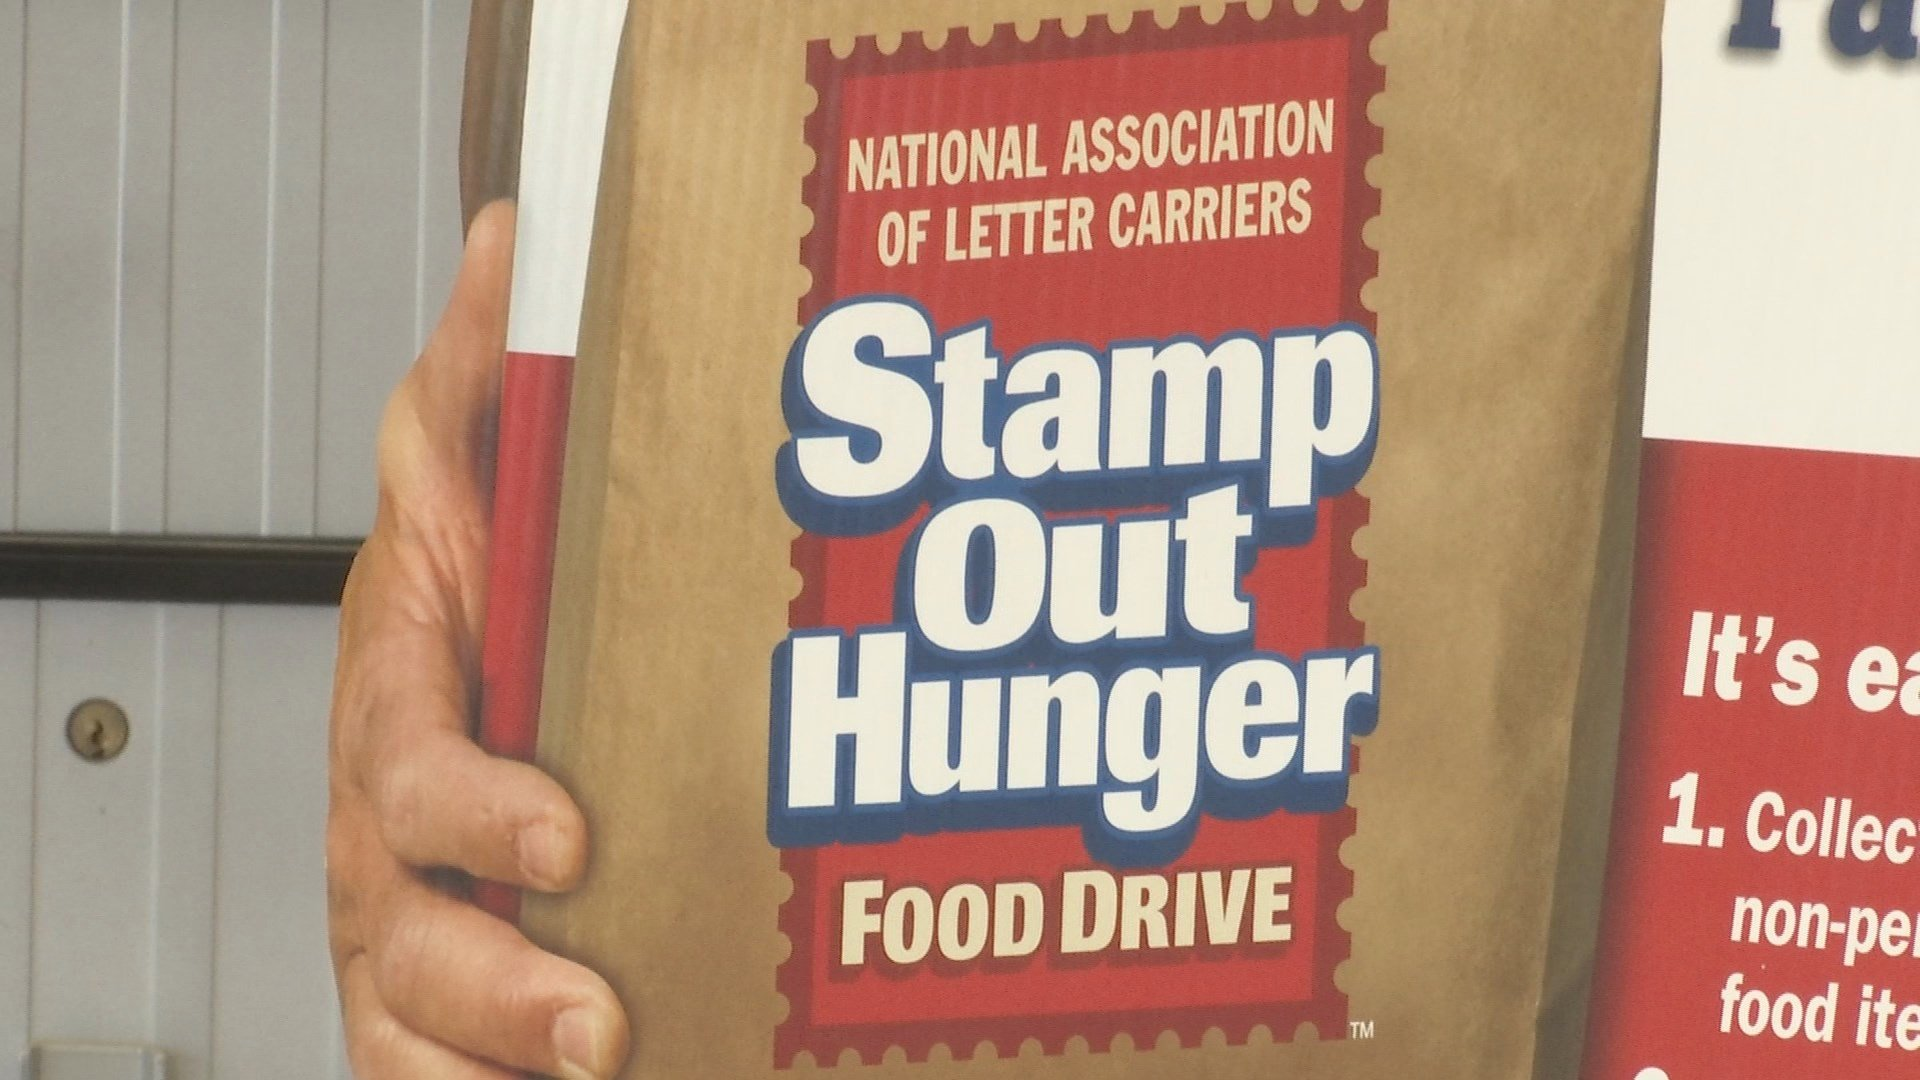 Food drive aims to stamp out hunger